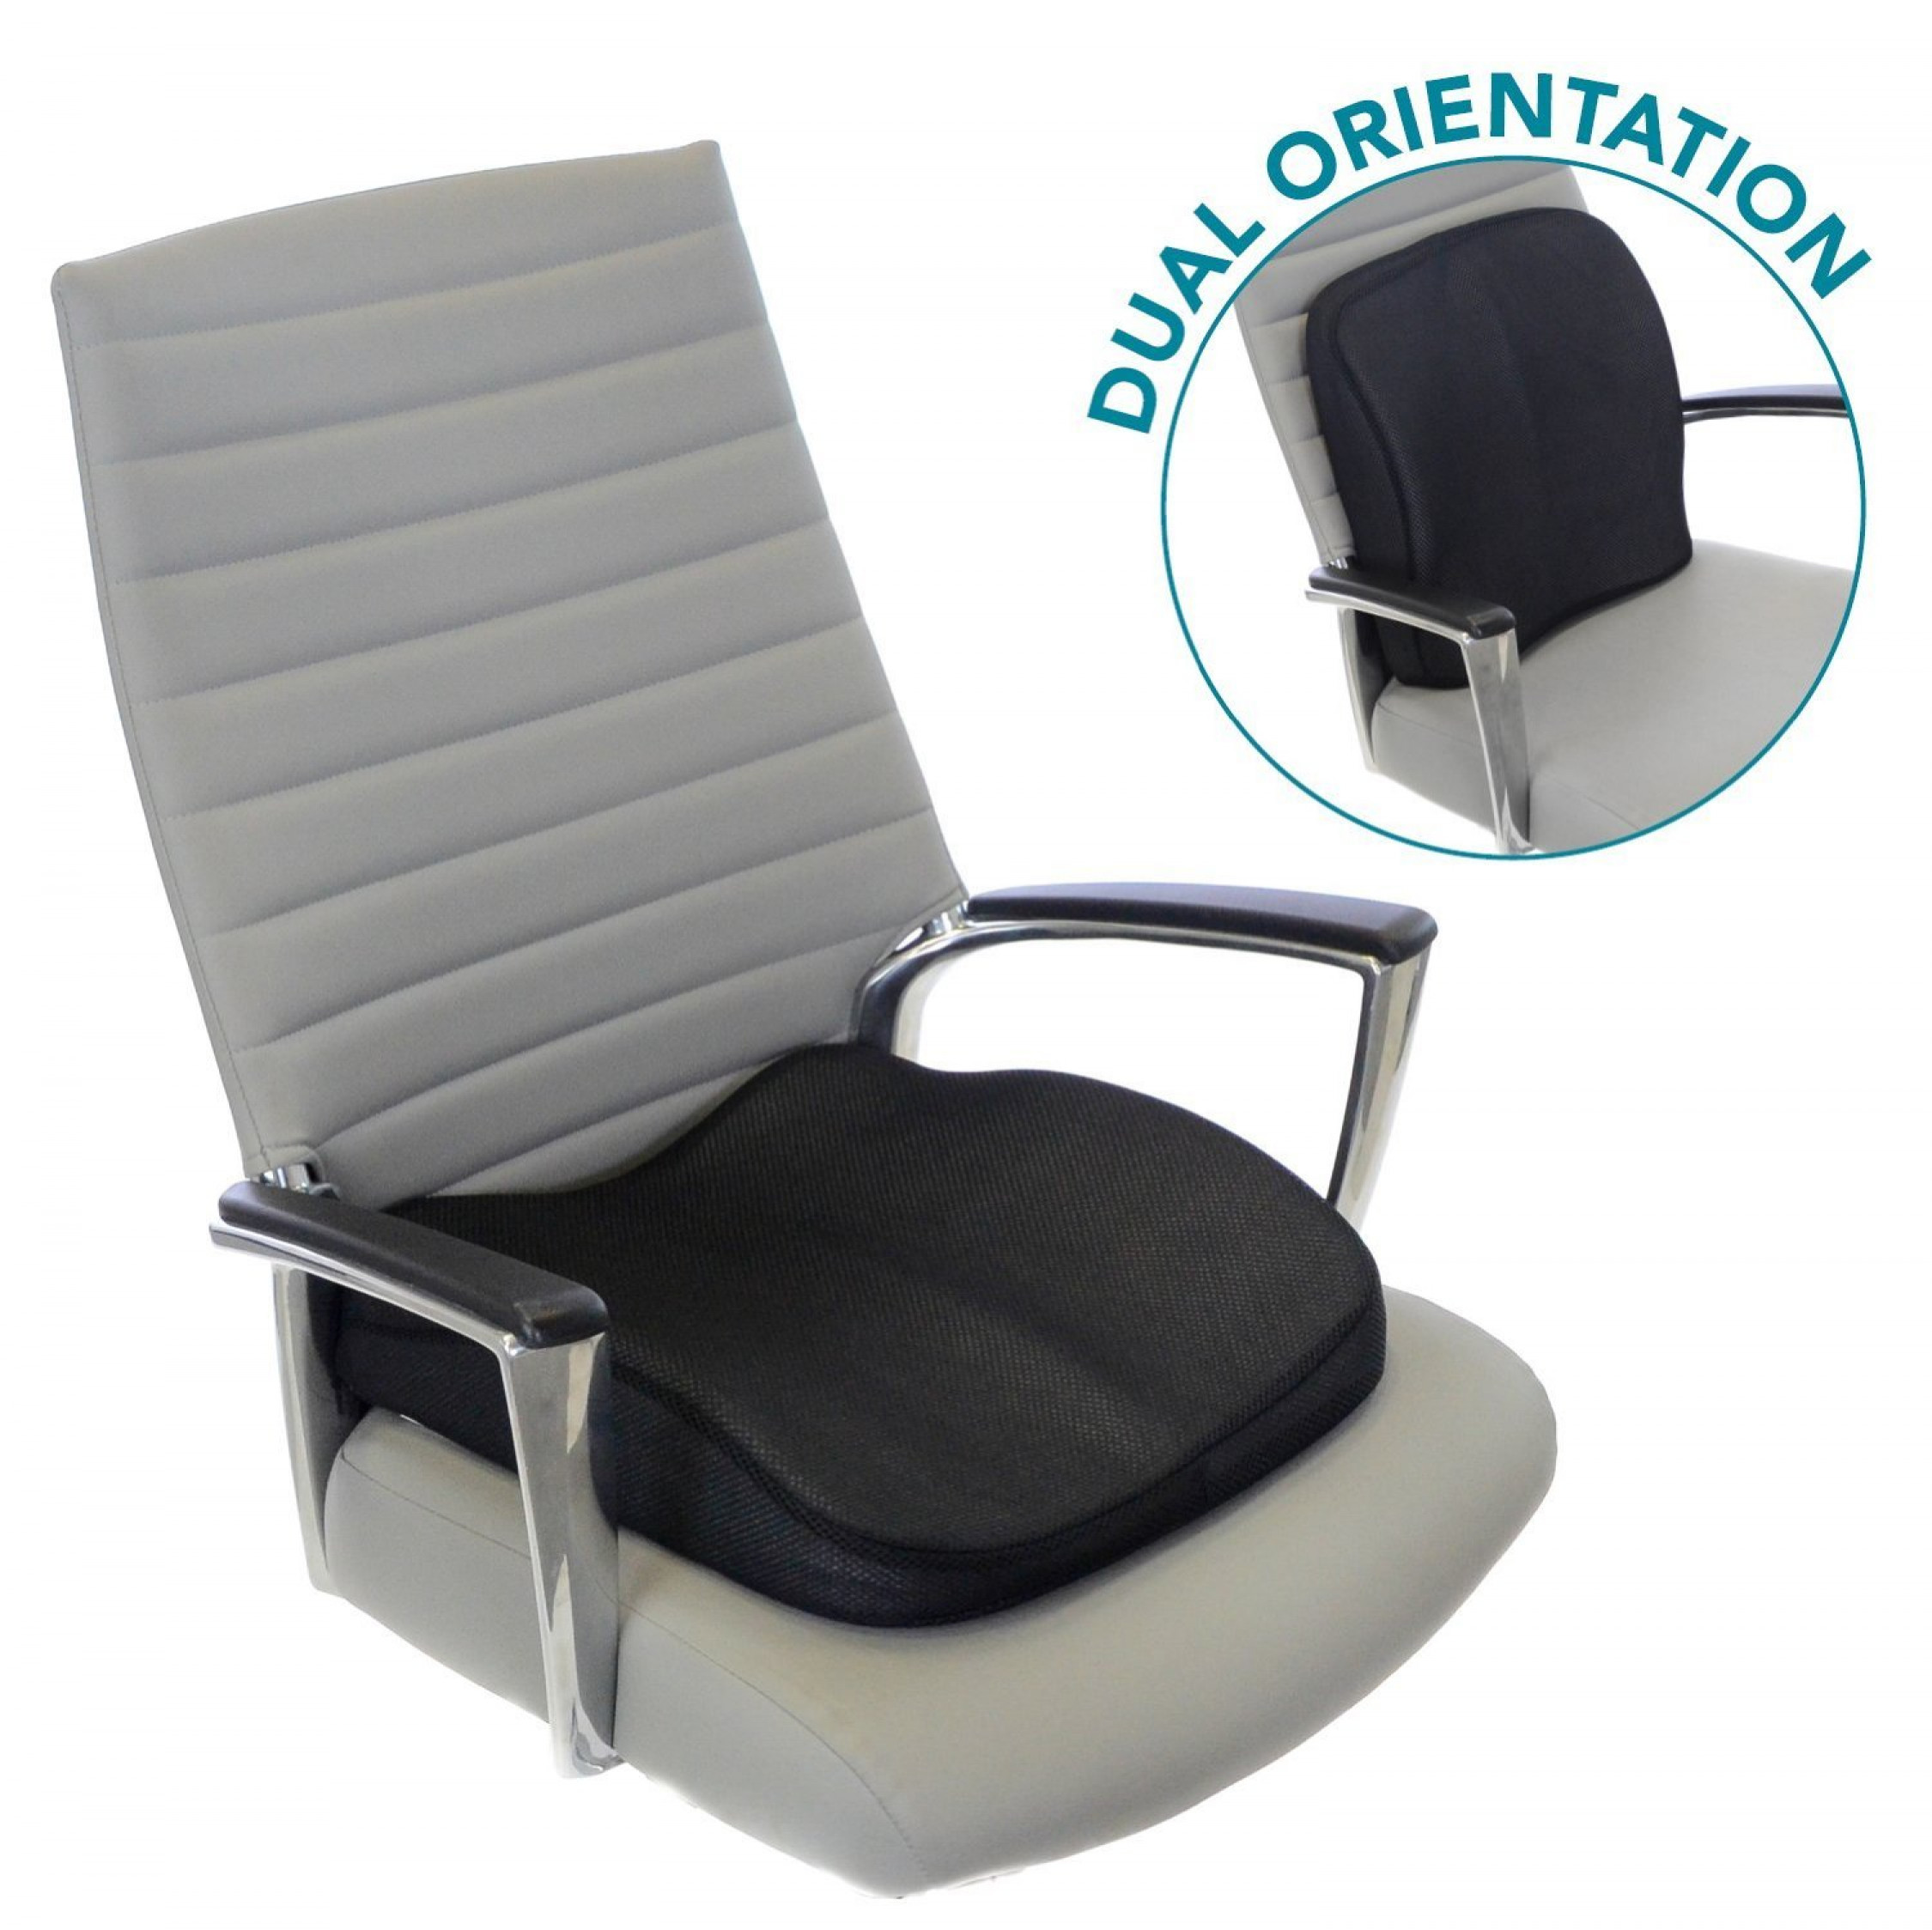 Foam Chair Cushions Memory Foam Seat Cushion For Lower Back Support And Seat